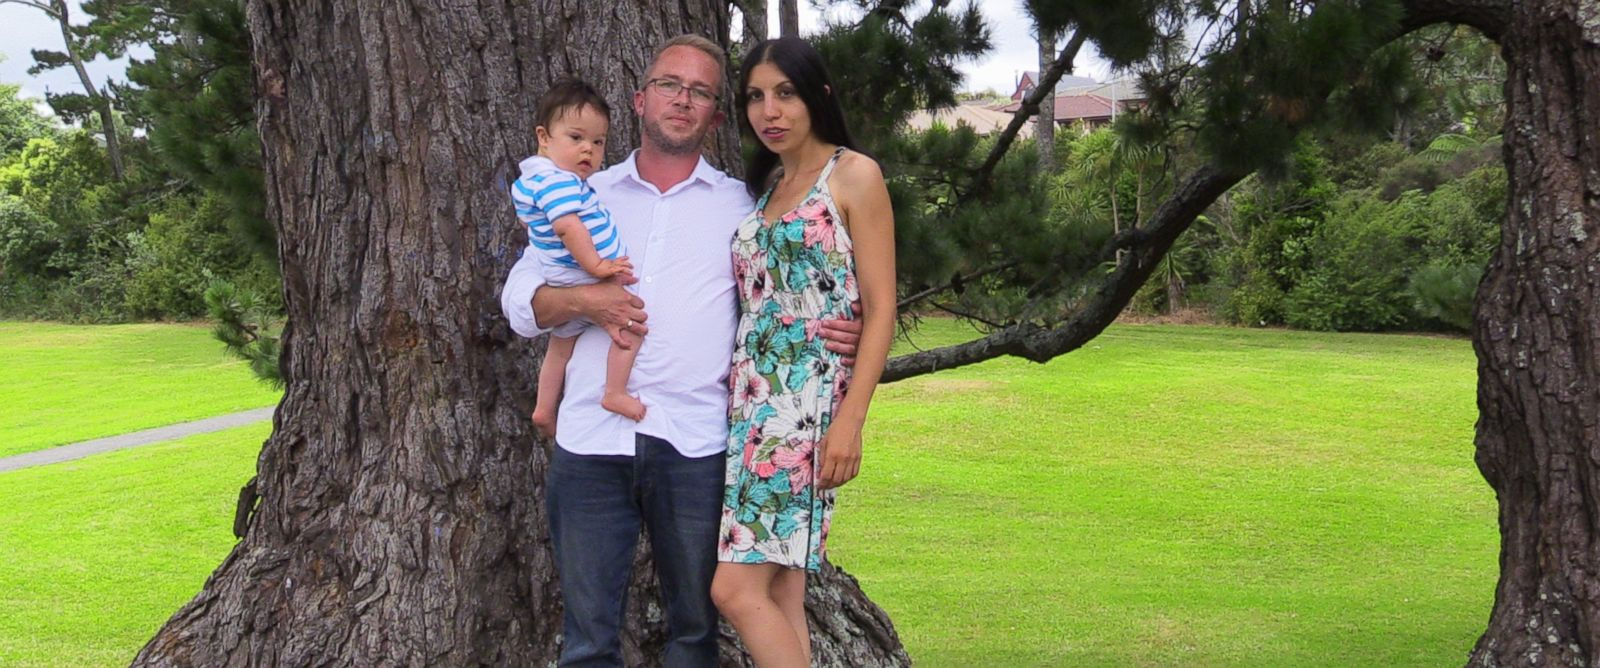 PHOTO: Samuel, Ruzan and Leo Forrest pose in a recent family photo in Auckland, New Zealand.